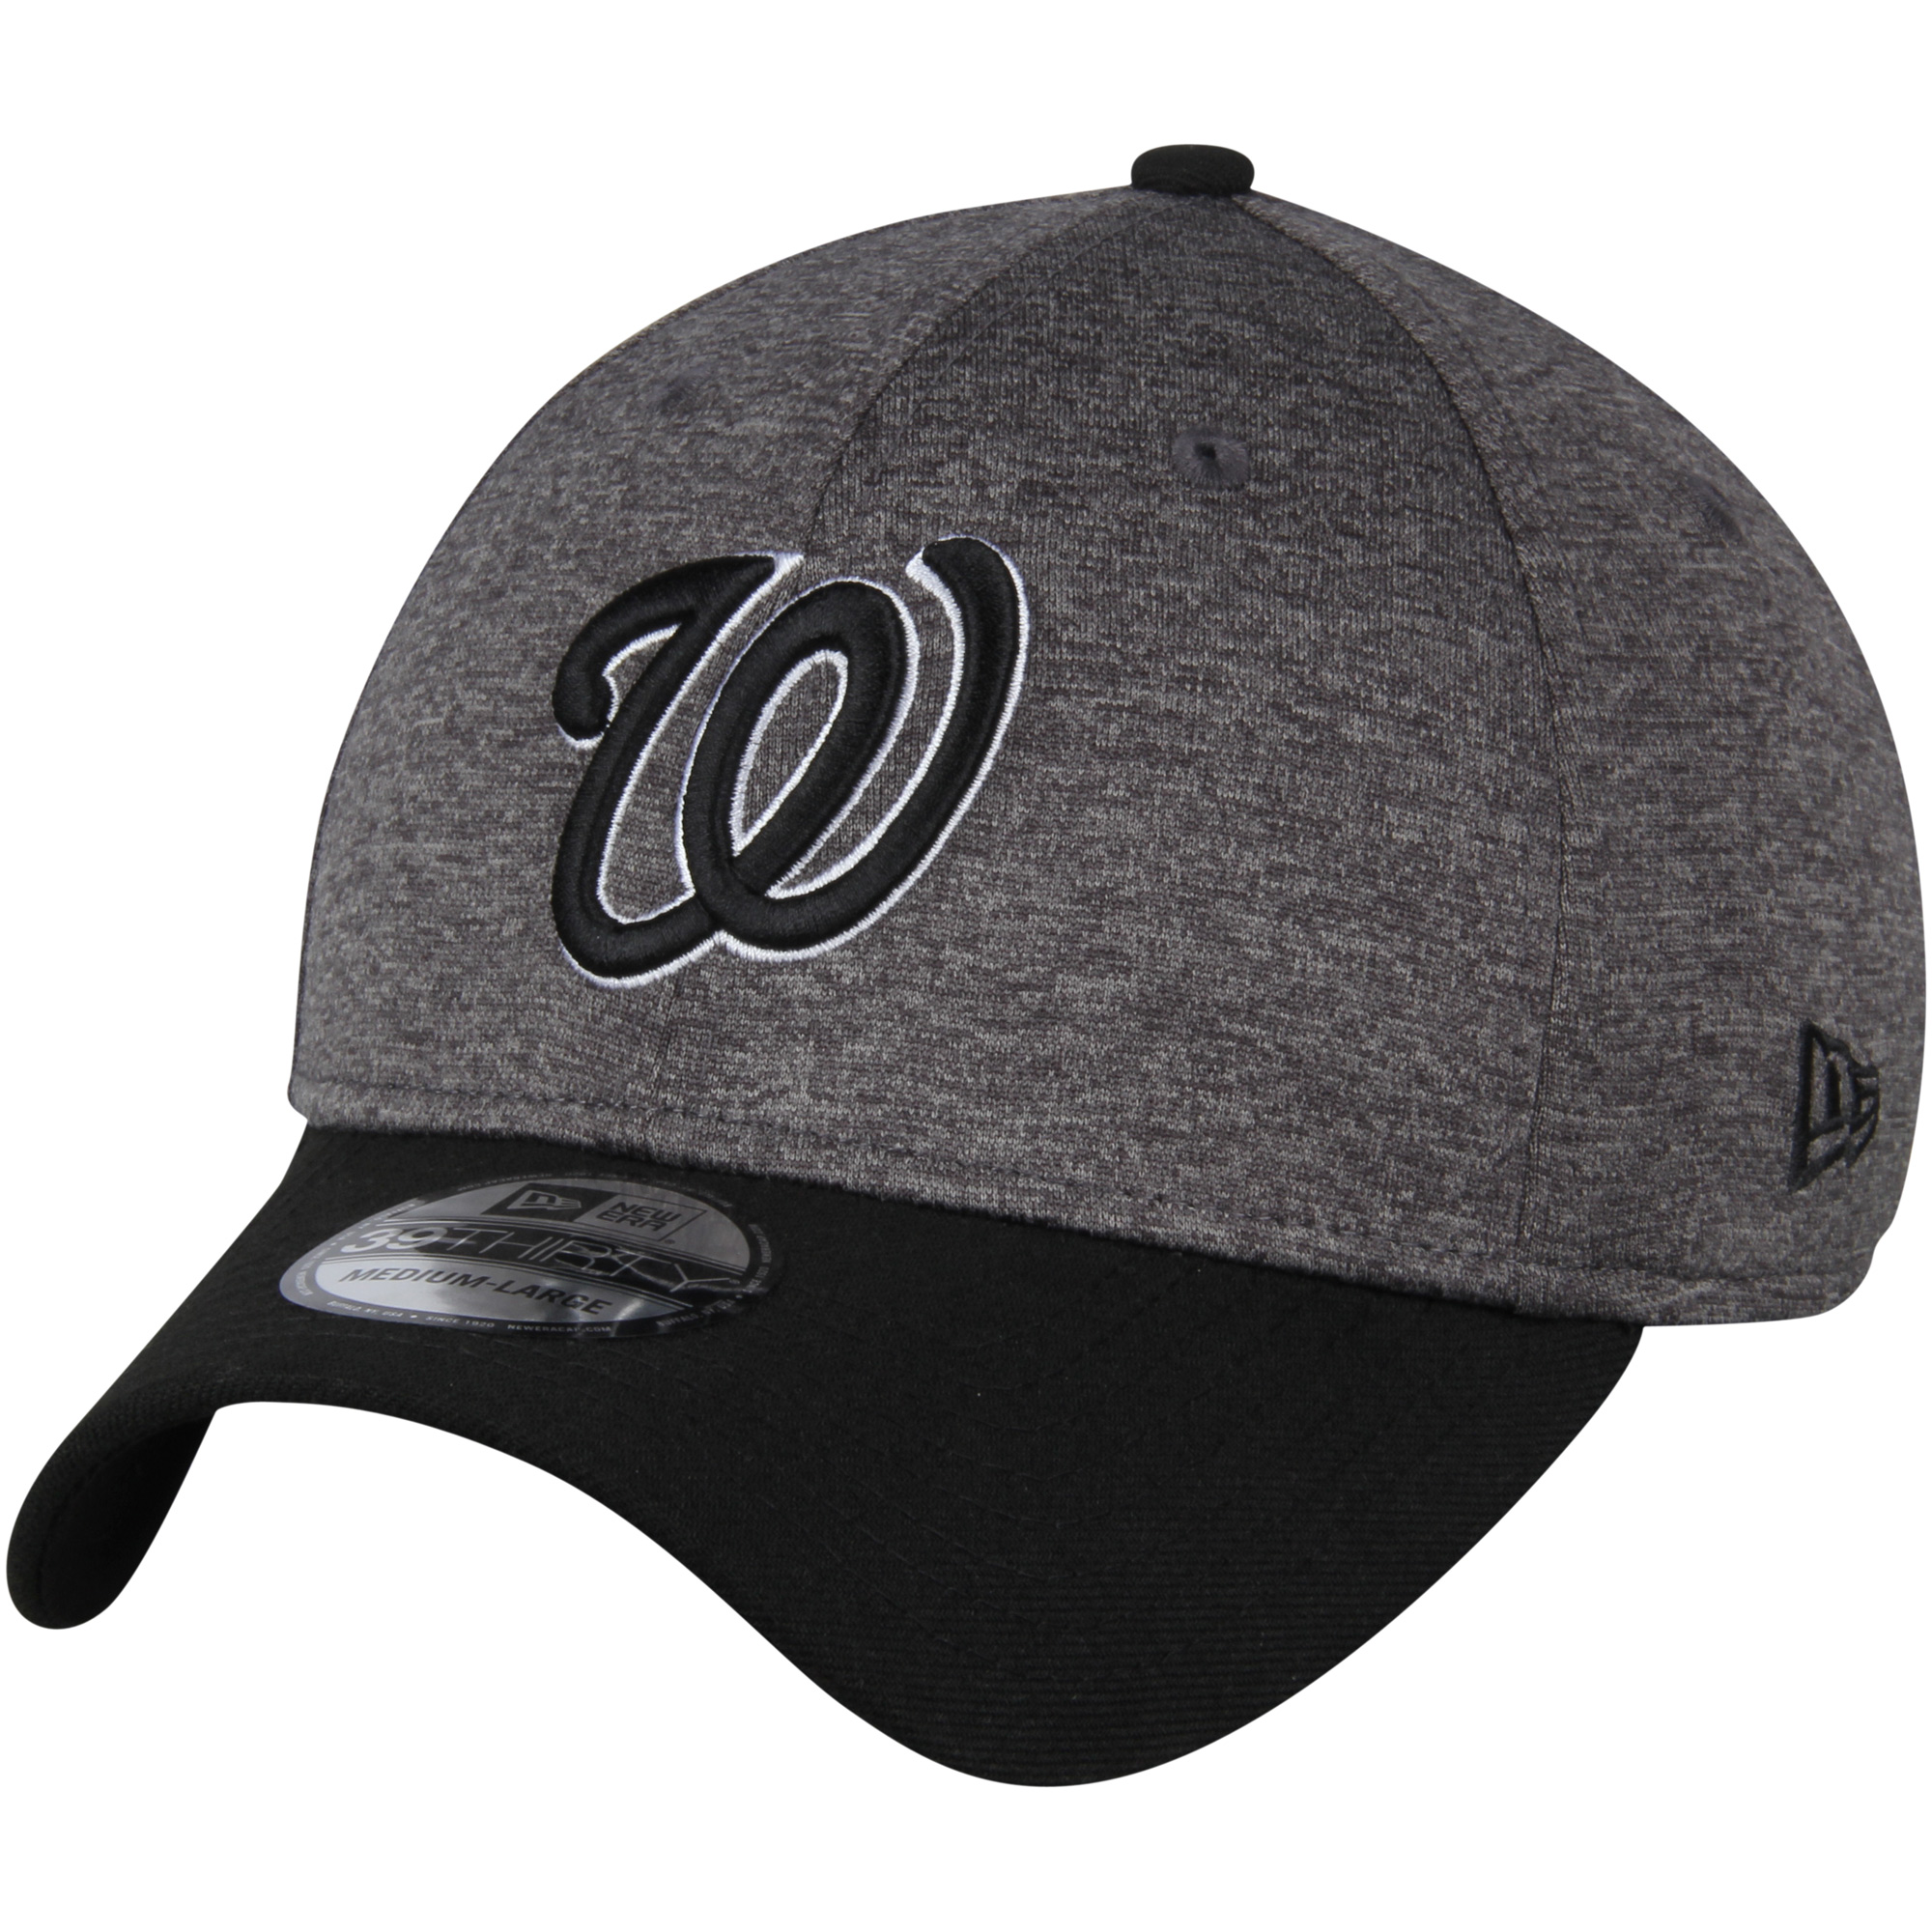 Washington Nationals New Era Shadow Tech 39THIRTY Flex Hat - Heathered Gray/Black